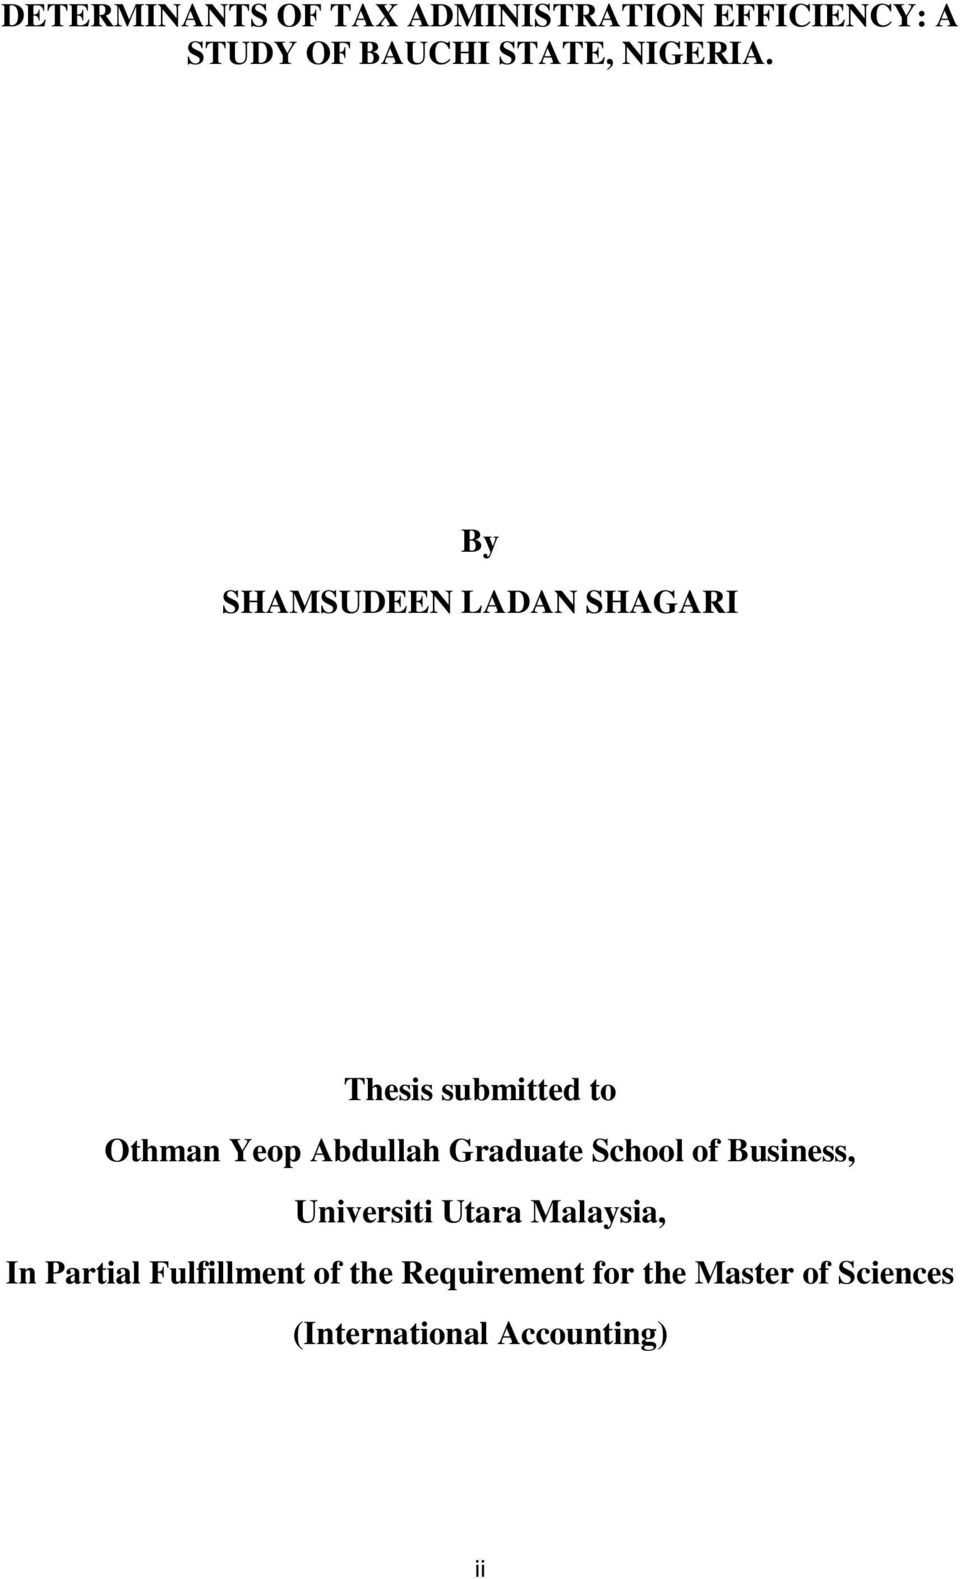 By SHAMSUDEEN LADAN SHAGARI Thesis submitted to Othman Yeop Abdullah